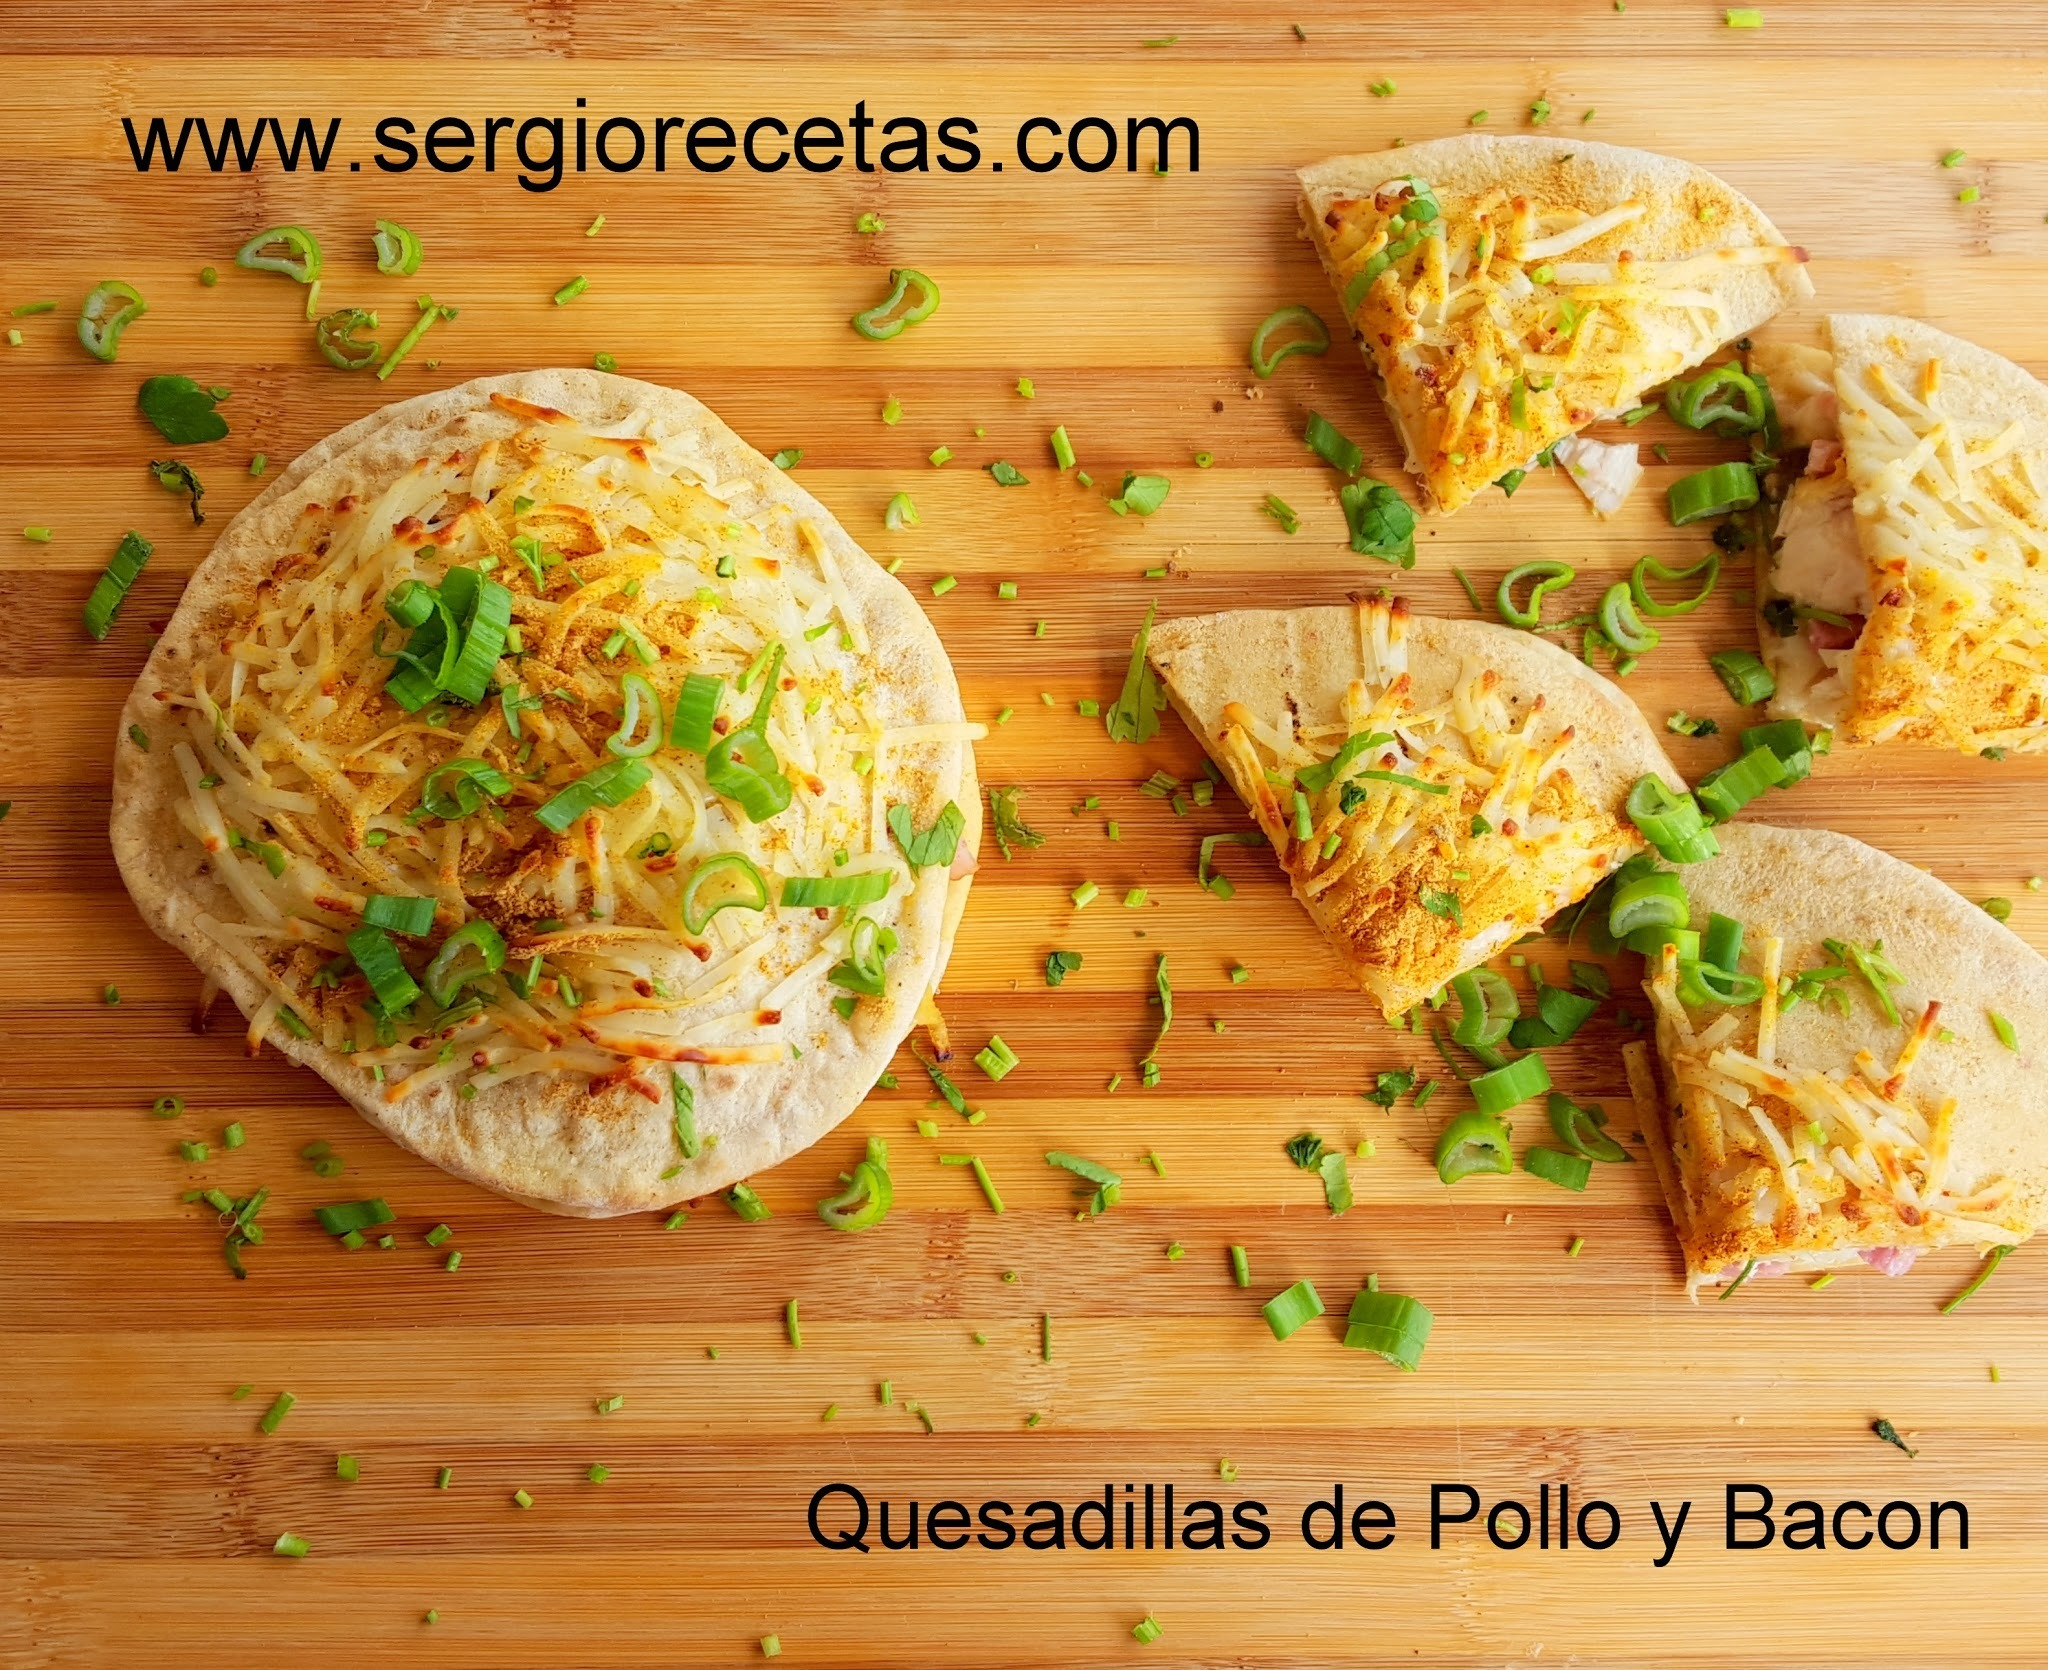 Sergio Benito: Quesadillas de Pollo y Bacon Express.